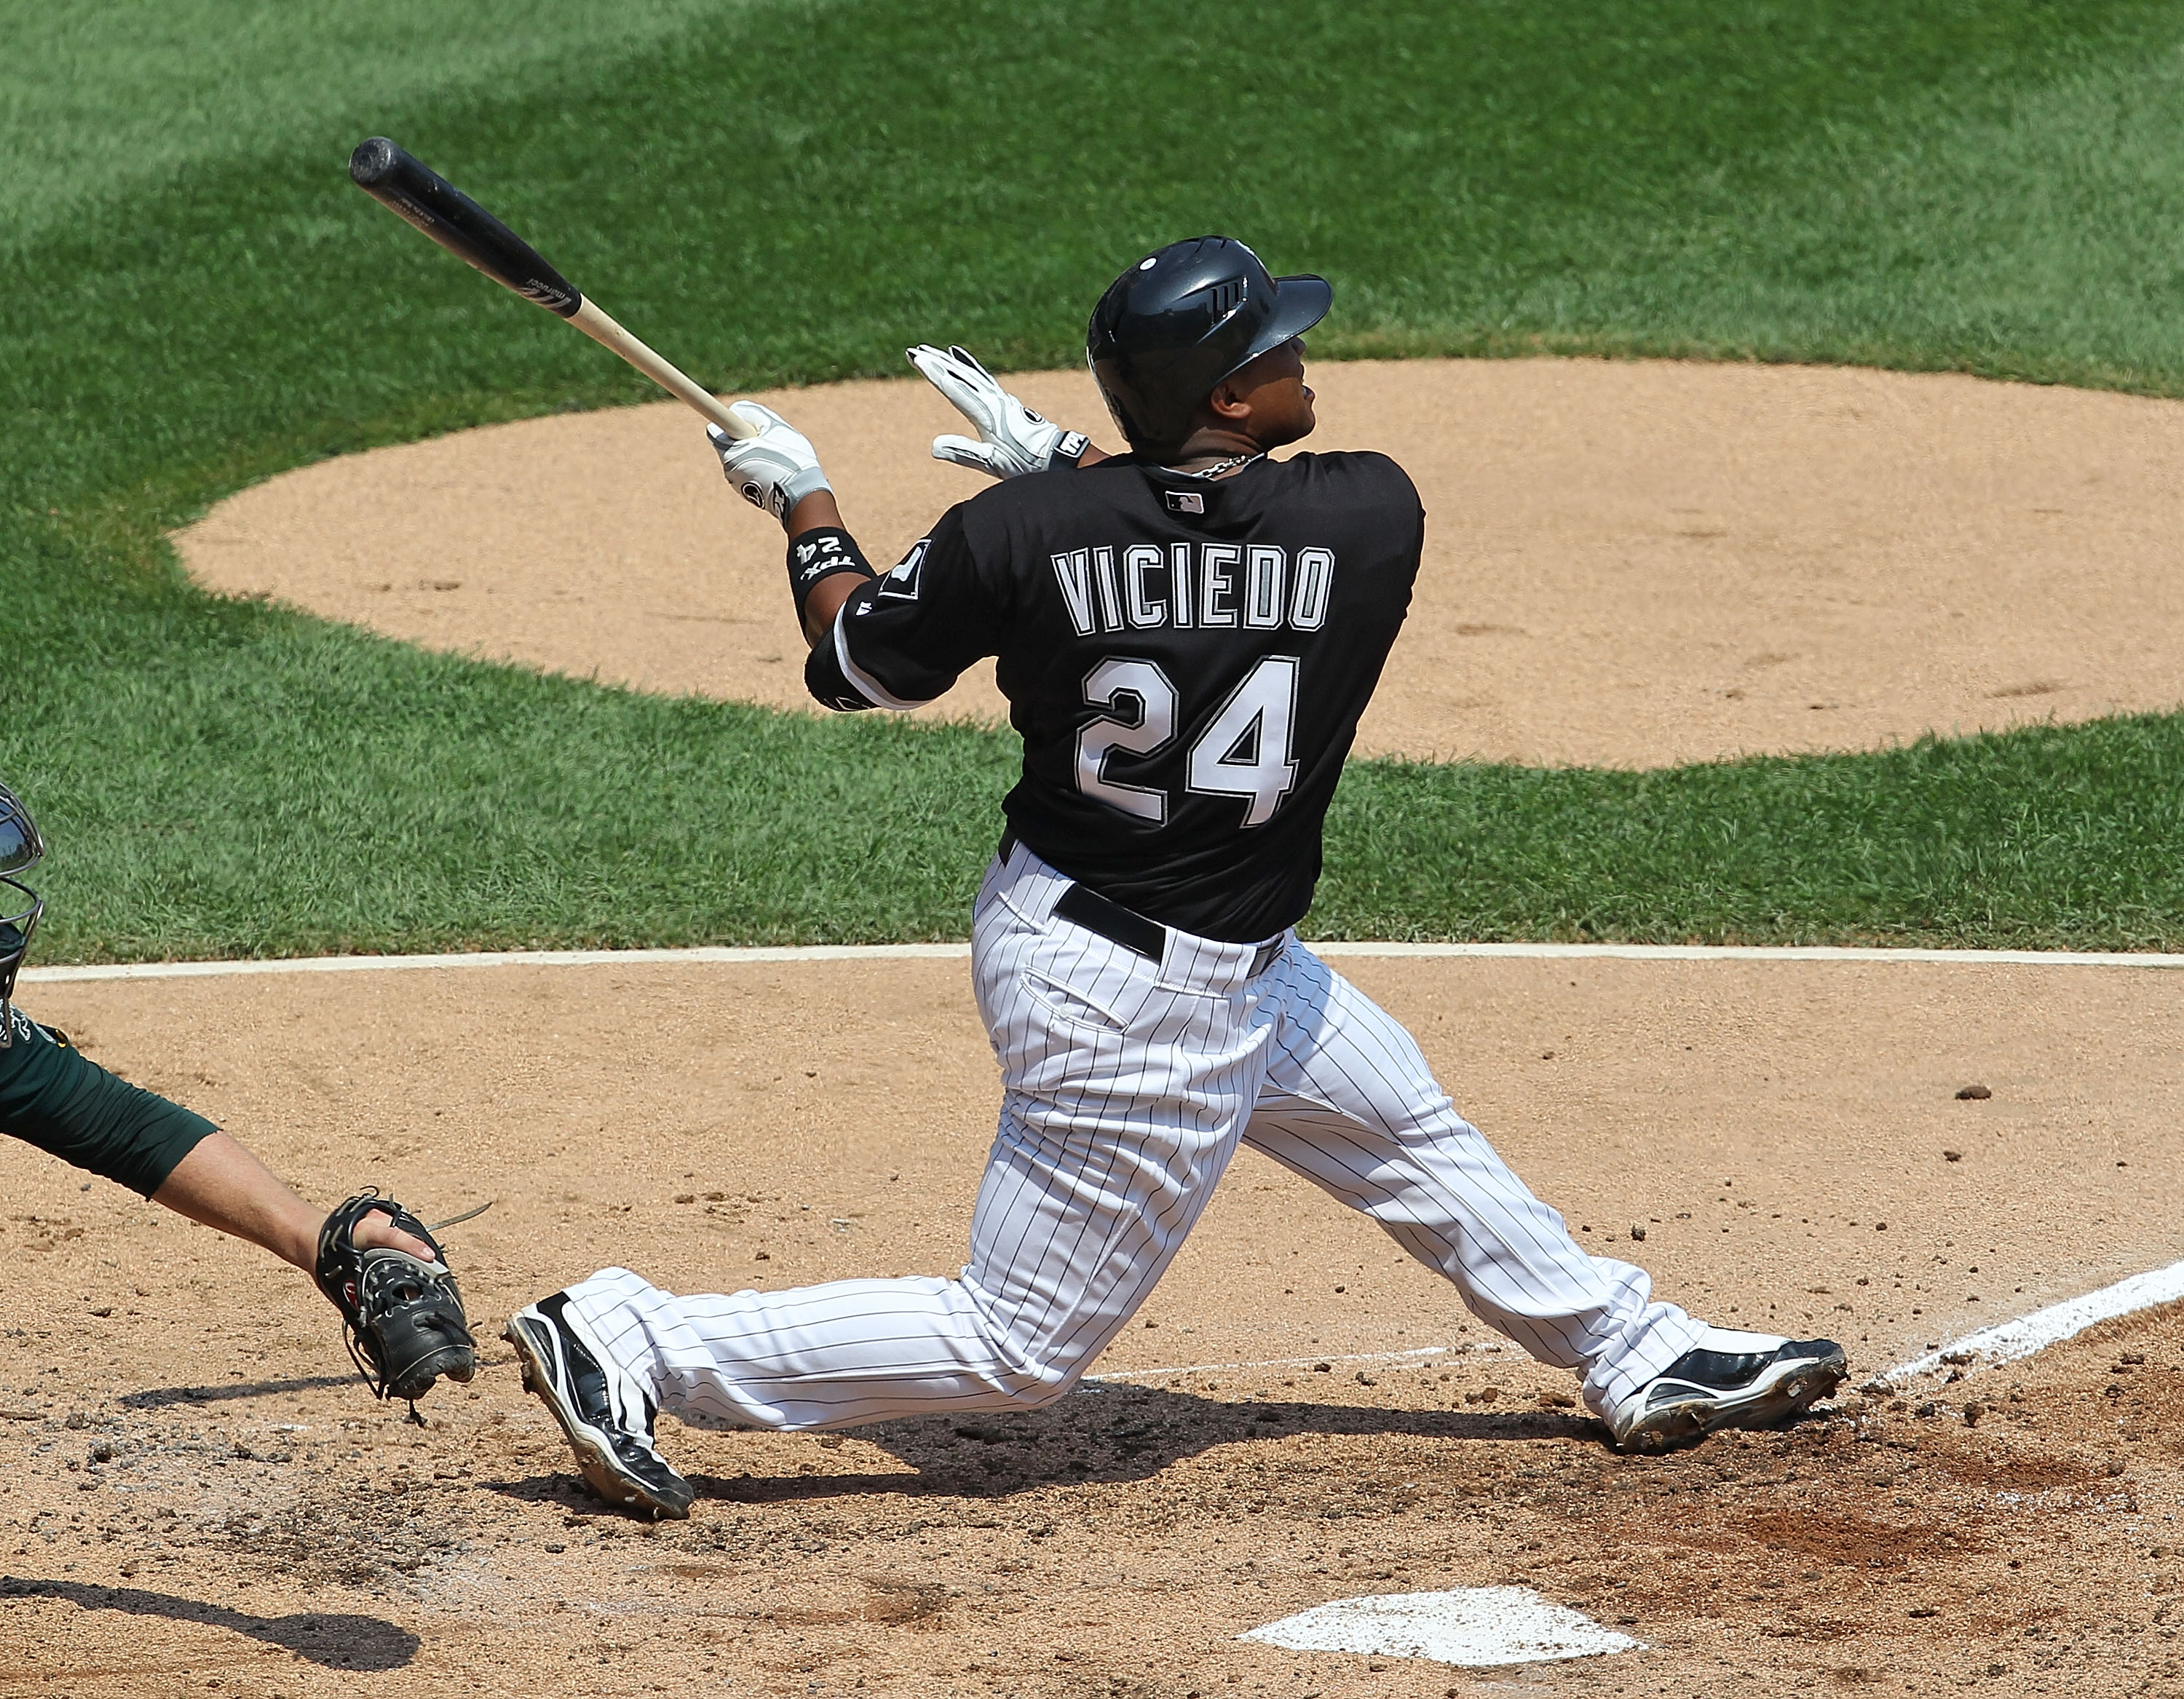 CHICAGO - AUGUST 01: Dayan Viciedo #24 of the Chicago White Sox hits the ball against the Oakland Athletics at U.S. Cellular Field on August 1, 2010 in Chicago, Illinois. The White Sox defeated the Athletics 4-1. (Photo by Jonathan Daniel/Getty Images)